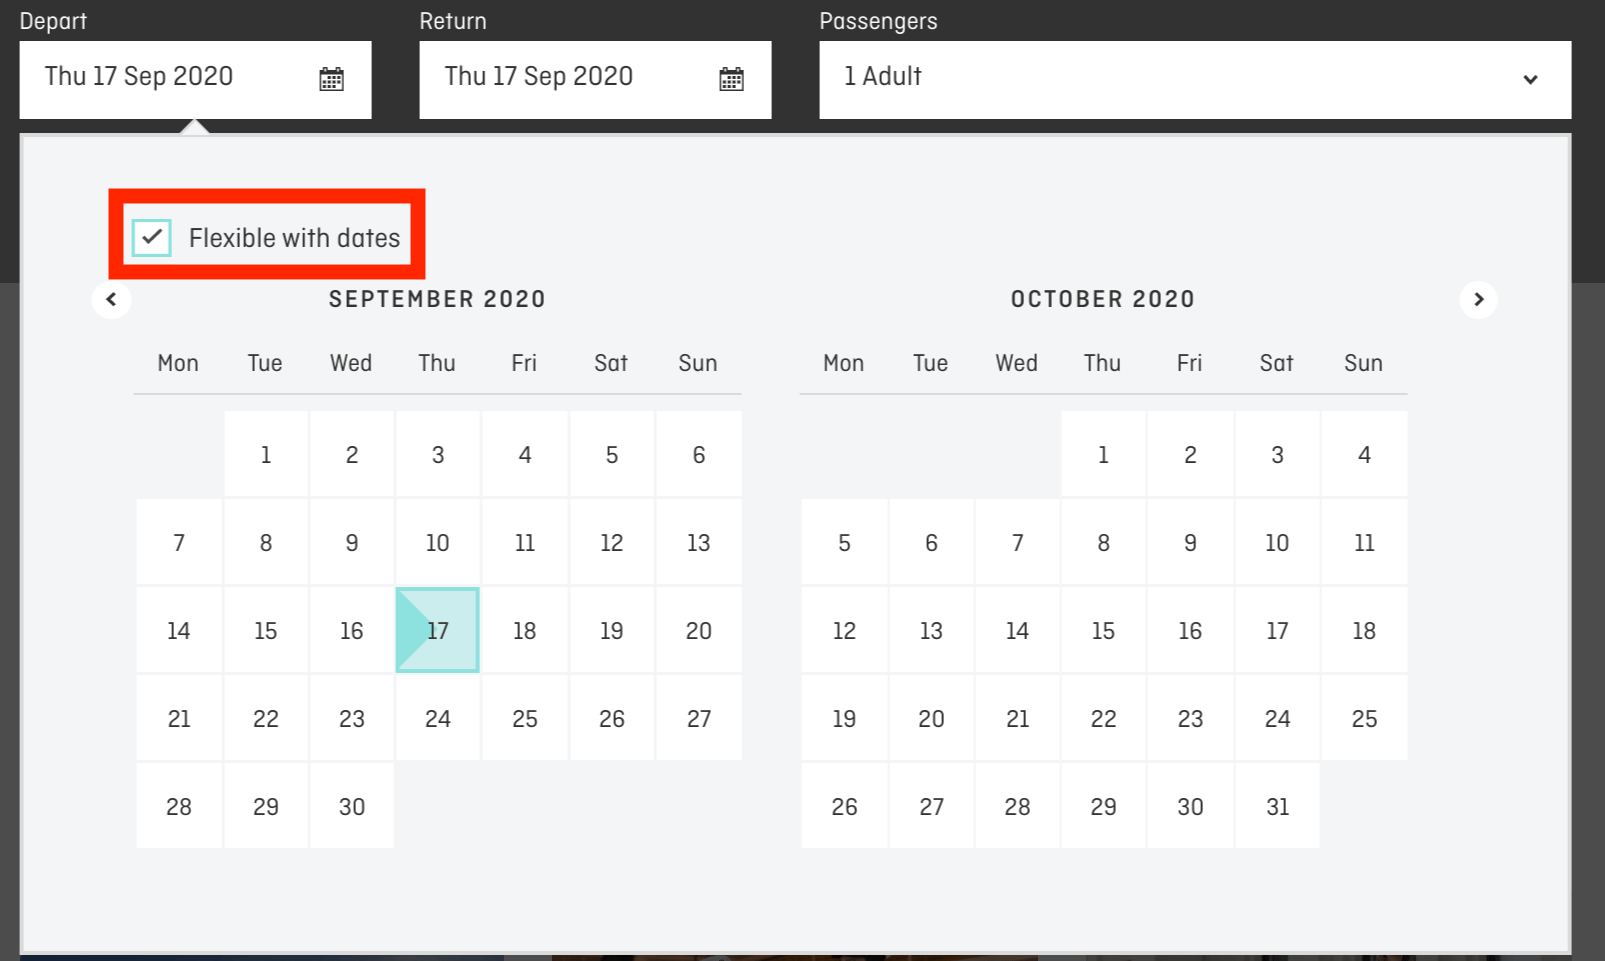 Flexible With Dates Checkbox Screen Shot